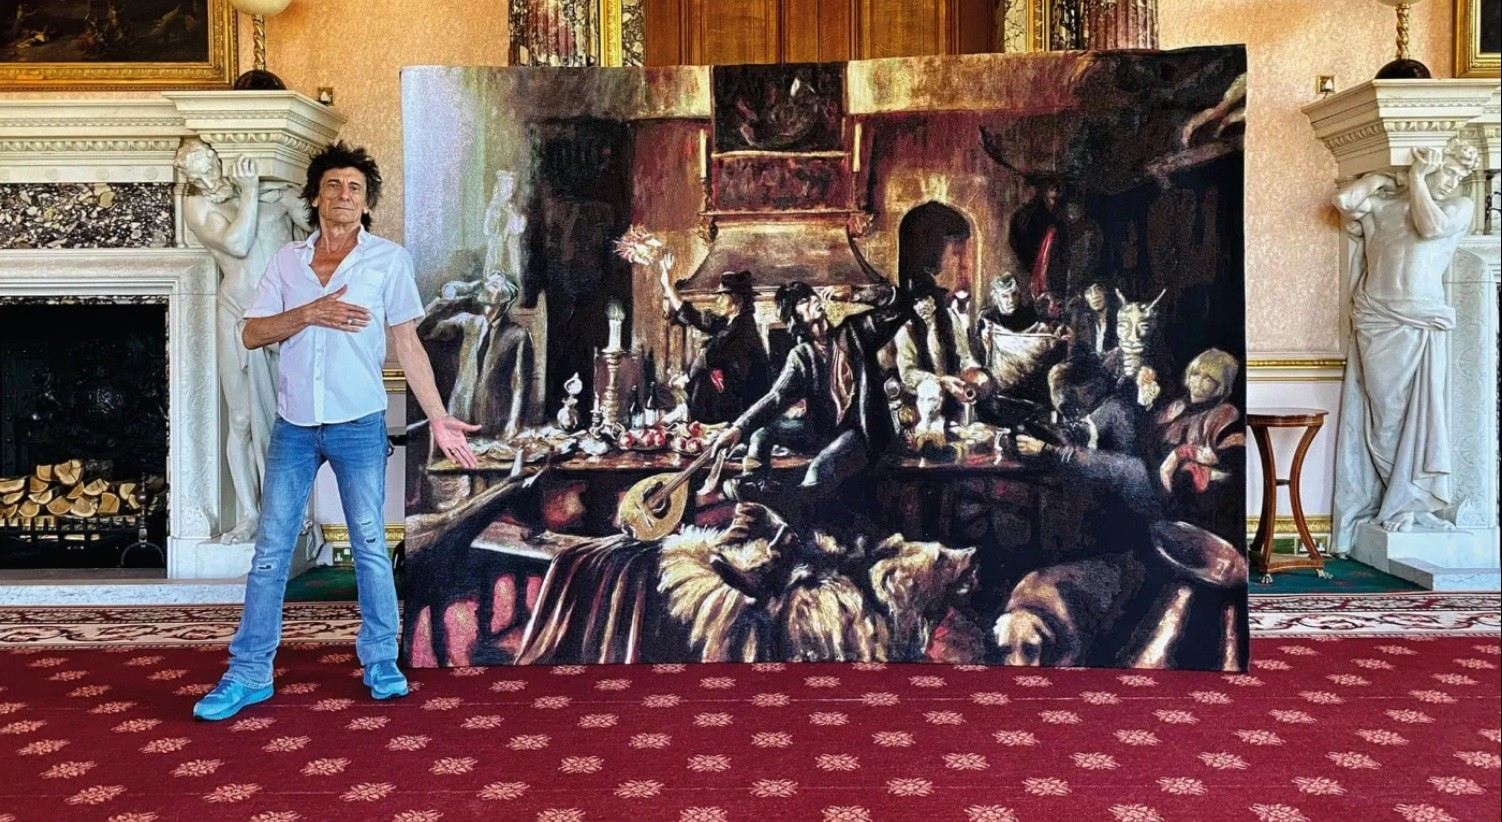 Rolling Stones guitarist Ronnie Wood exhibited his own paintings